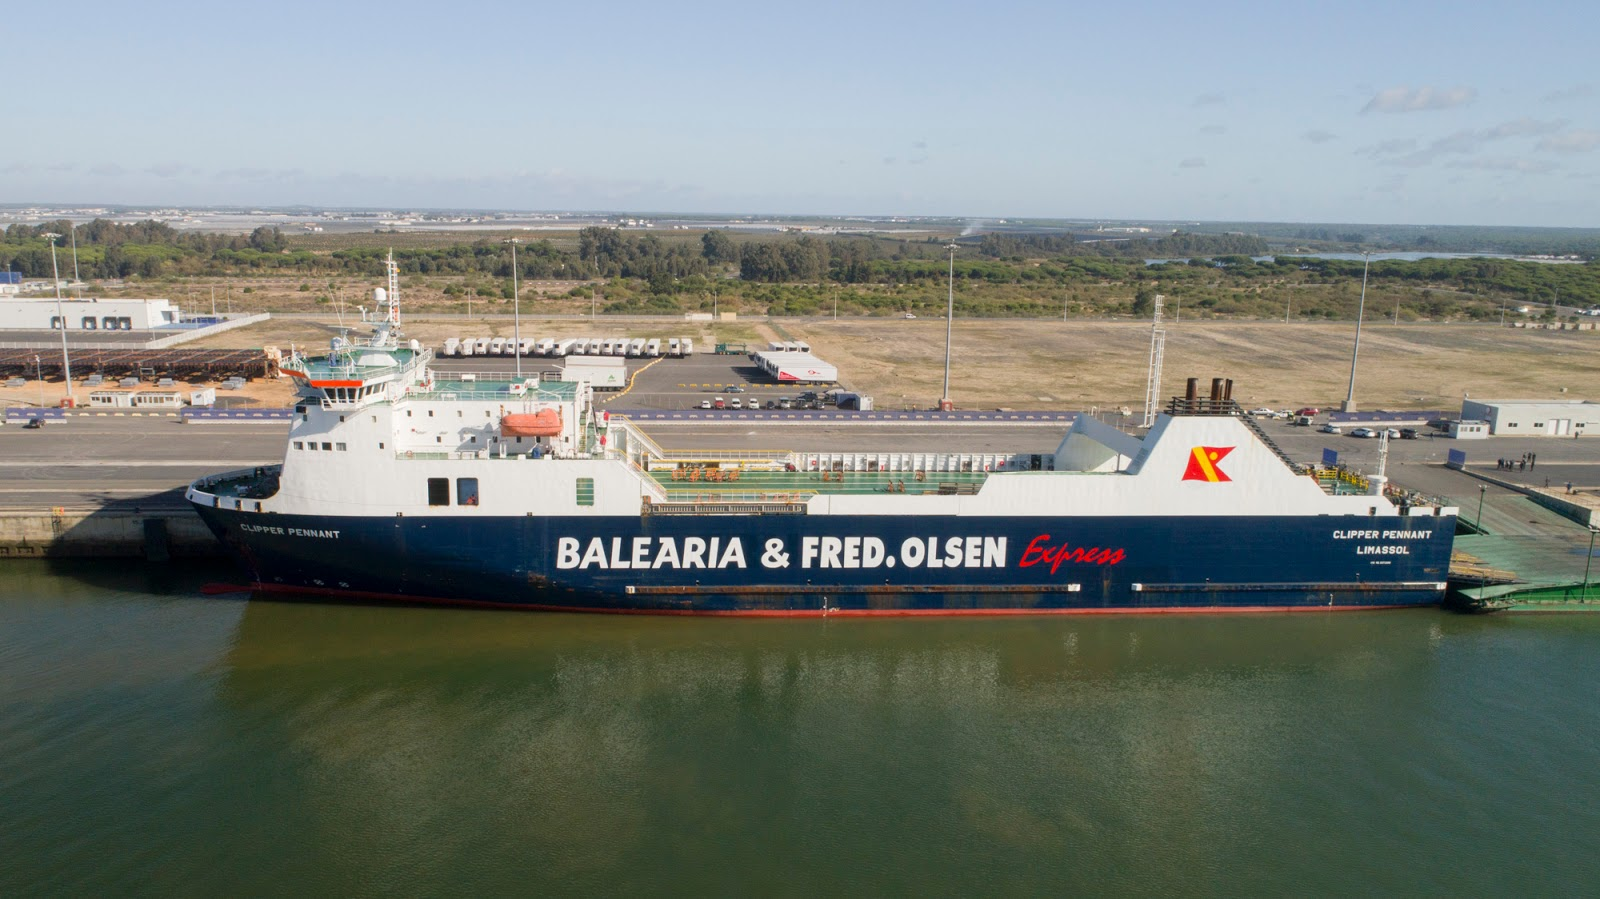 Ferrybalear bale ria y fred olsen express comienzan a for Oficinas fred olsen